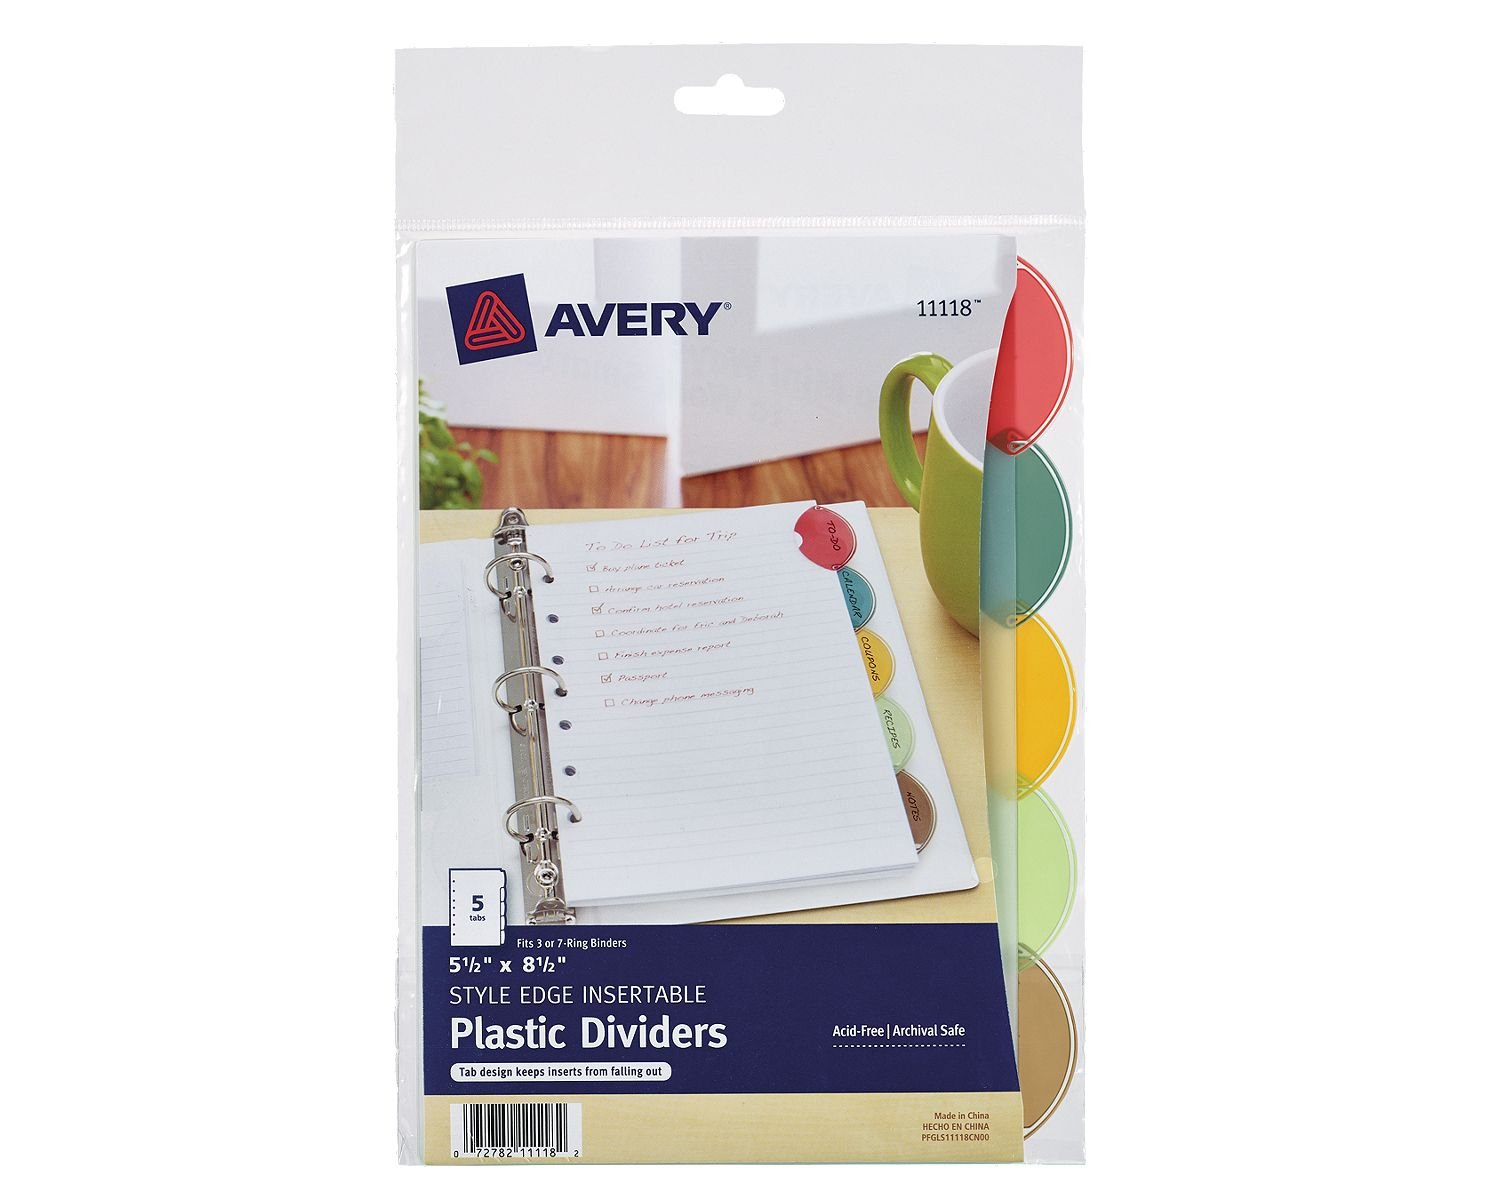 Avery Style Edge Insertable Plastic Dividers, 5.5 x 8.5 Inches, 5-Tab Set, 1 Set (11118) Avery Products Corporation